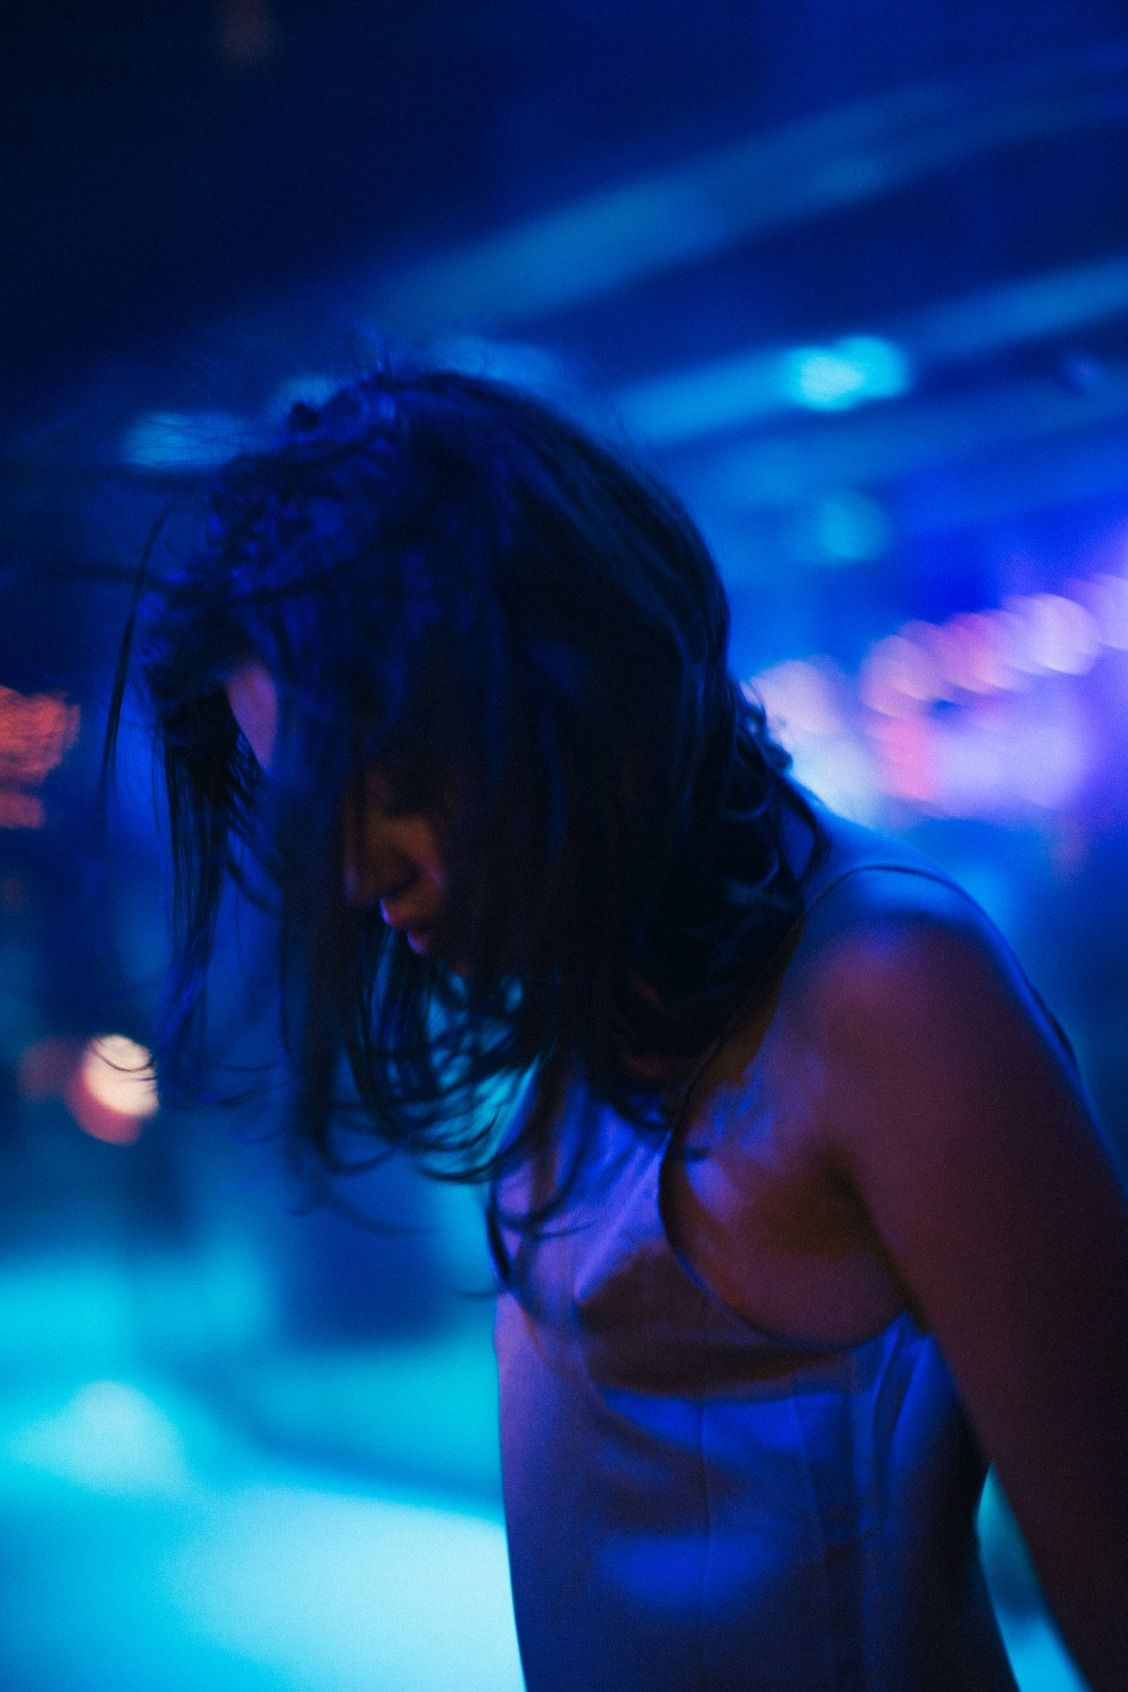 About A Girl Nicole Zimmermann Neon Aesthetic Photography Neon Girl Daily additions of new, awesome, hd aesthetic wallpapers for desktop and phones. about a girl nicole zimmermann neon